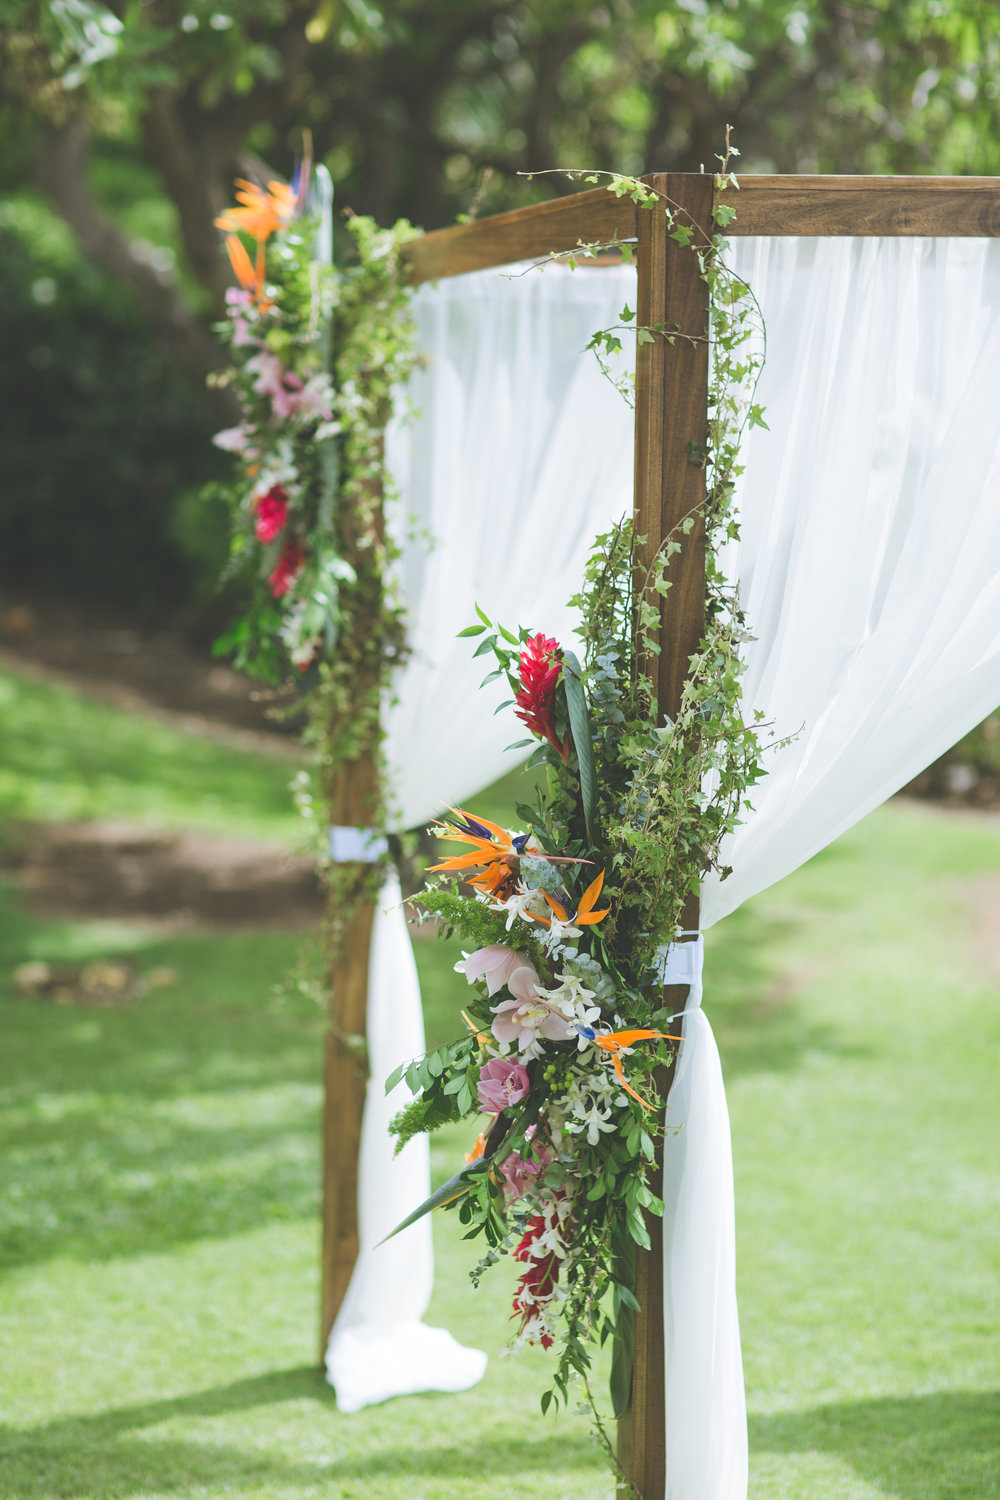 Bliss Maui Wedding - Dmitri and Sandra Photography - wedding arch flowers